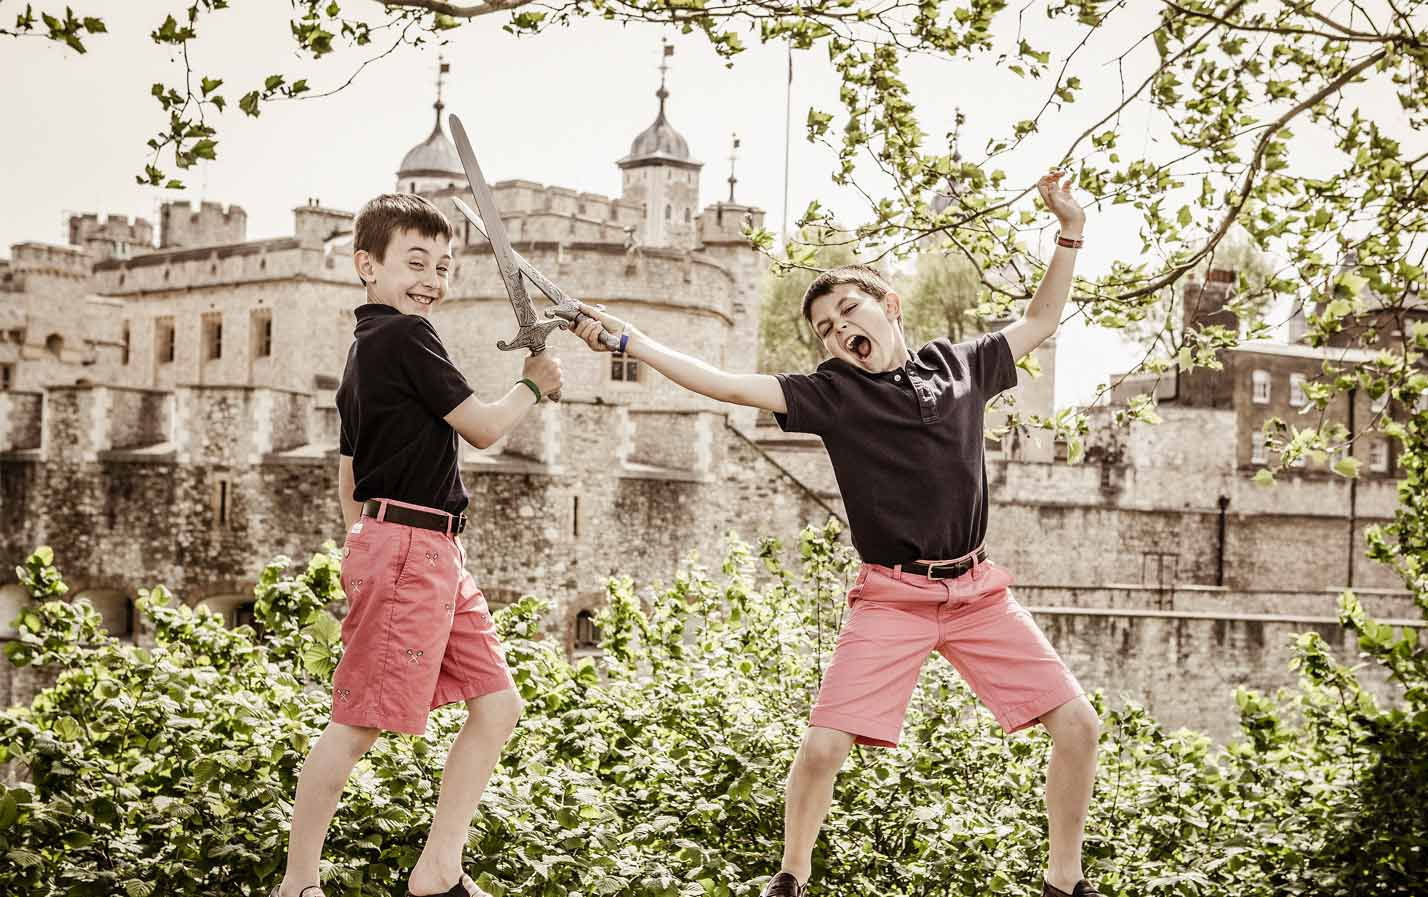 Boys play fighting with swords infront of a castle.